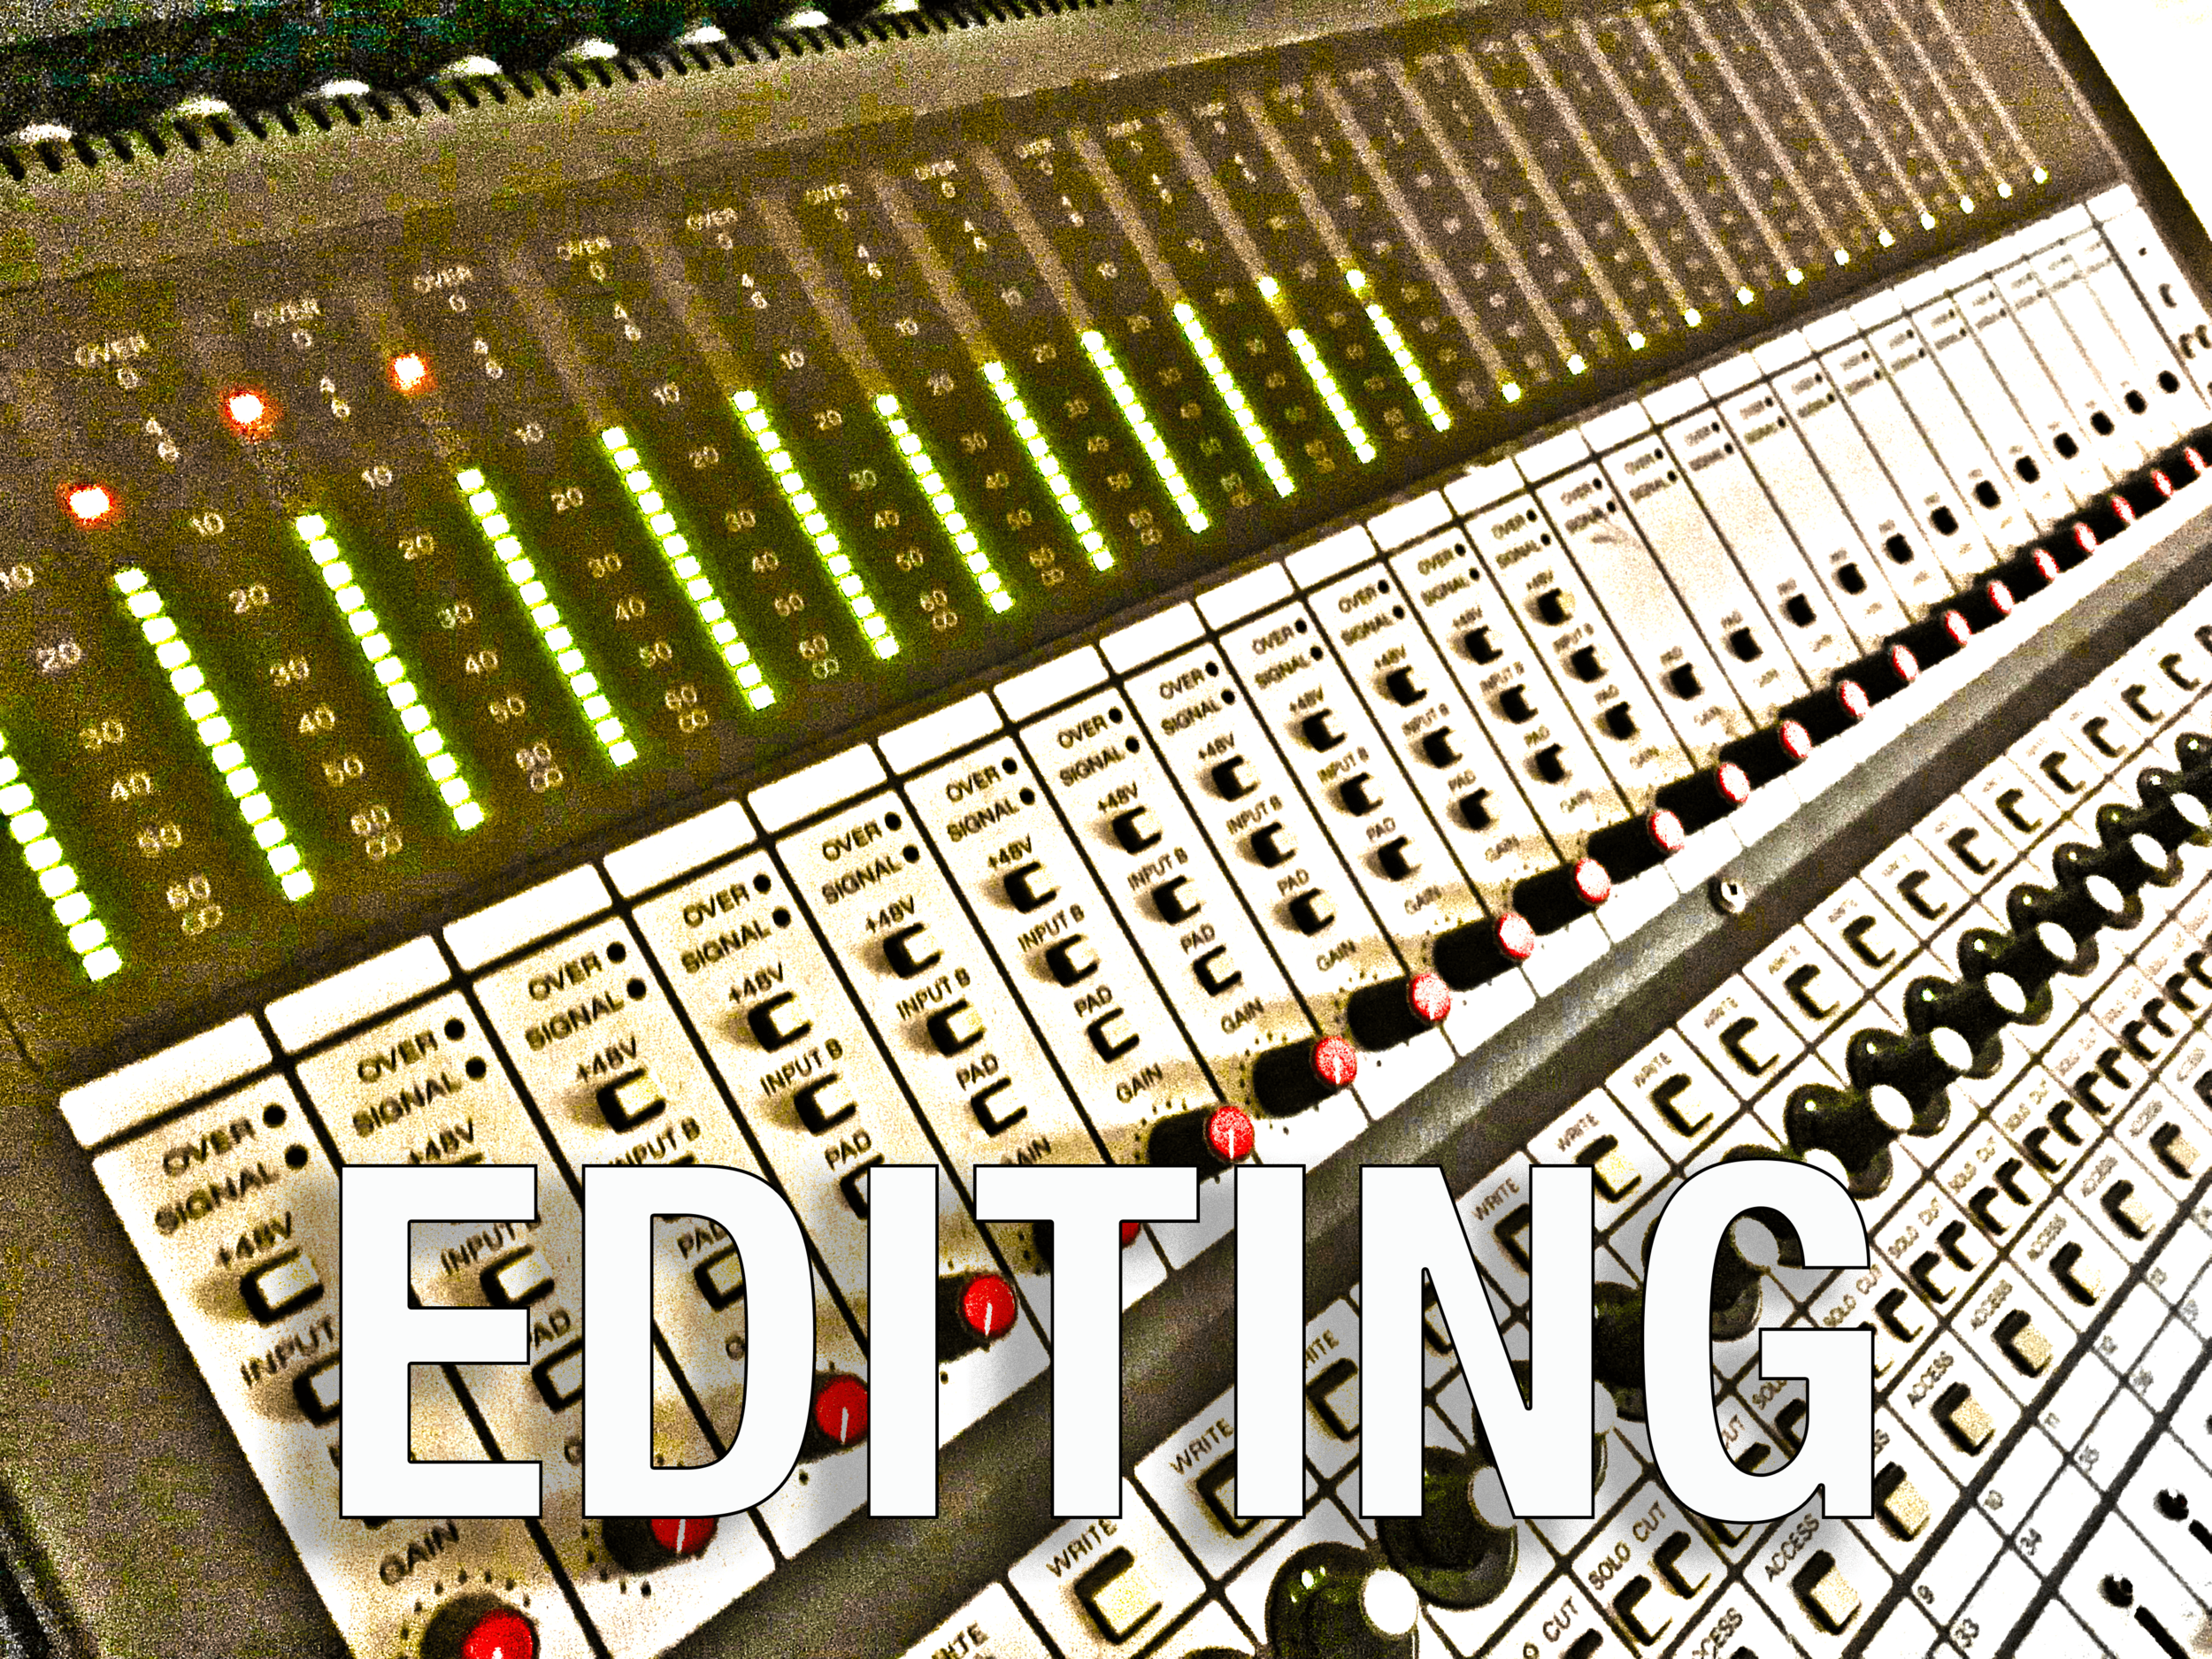 - I can take your tracks - whether or not they were recorded here at Hub City Recording - and edit them in order to prepare them for mixing. I can also create